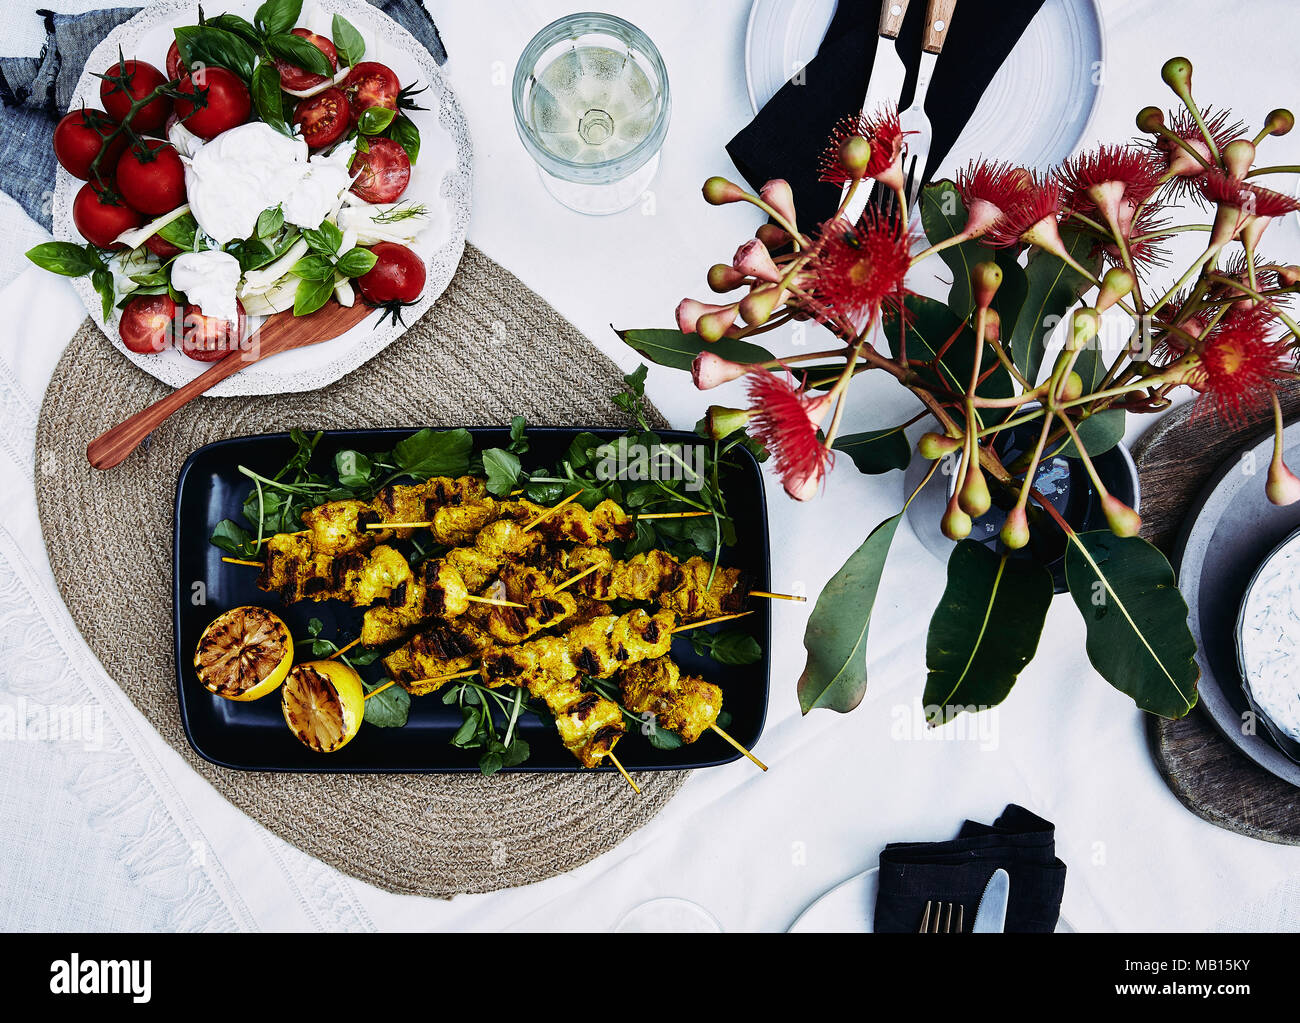 Table setting of mediterranean salad and grilled turmeric chicken skewers. - Stock Image